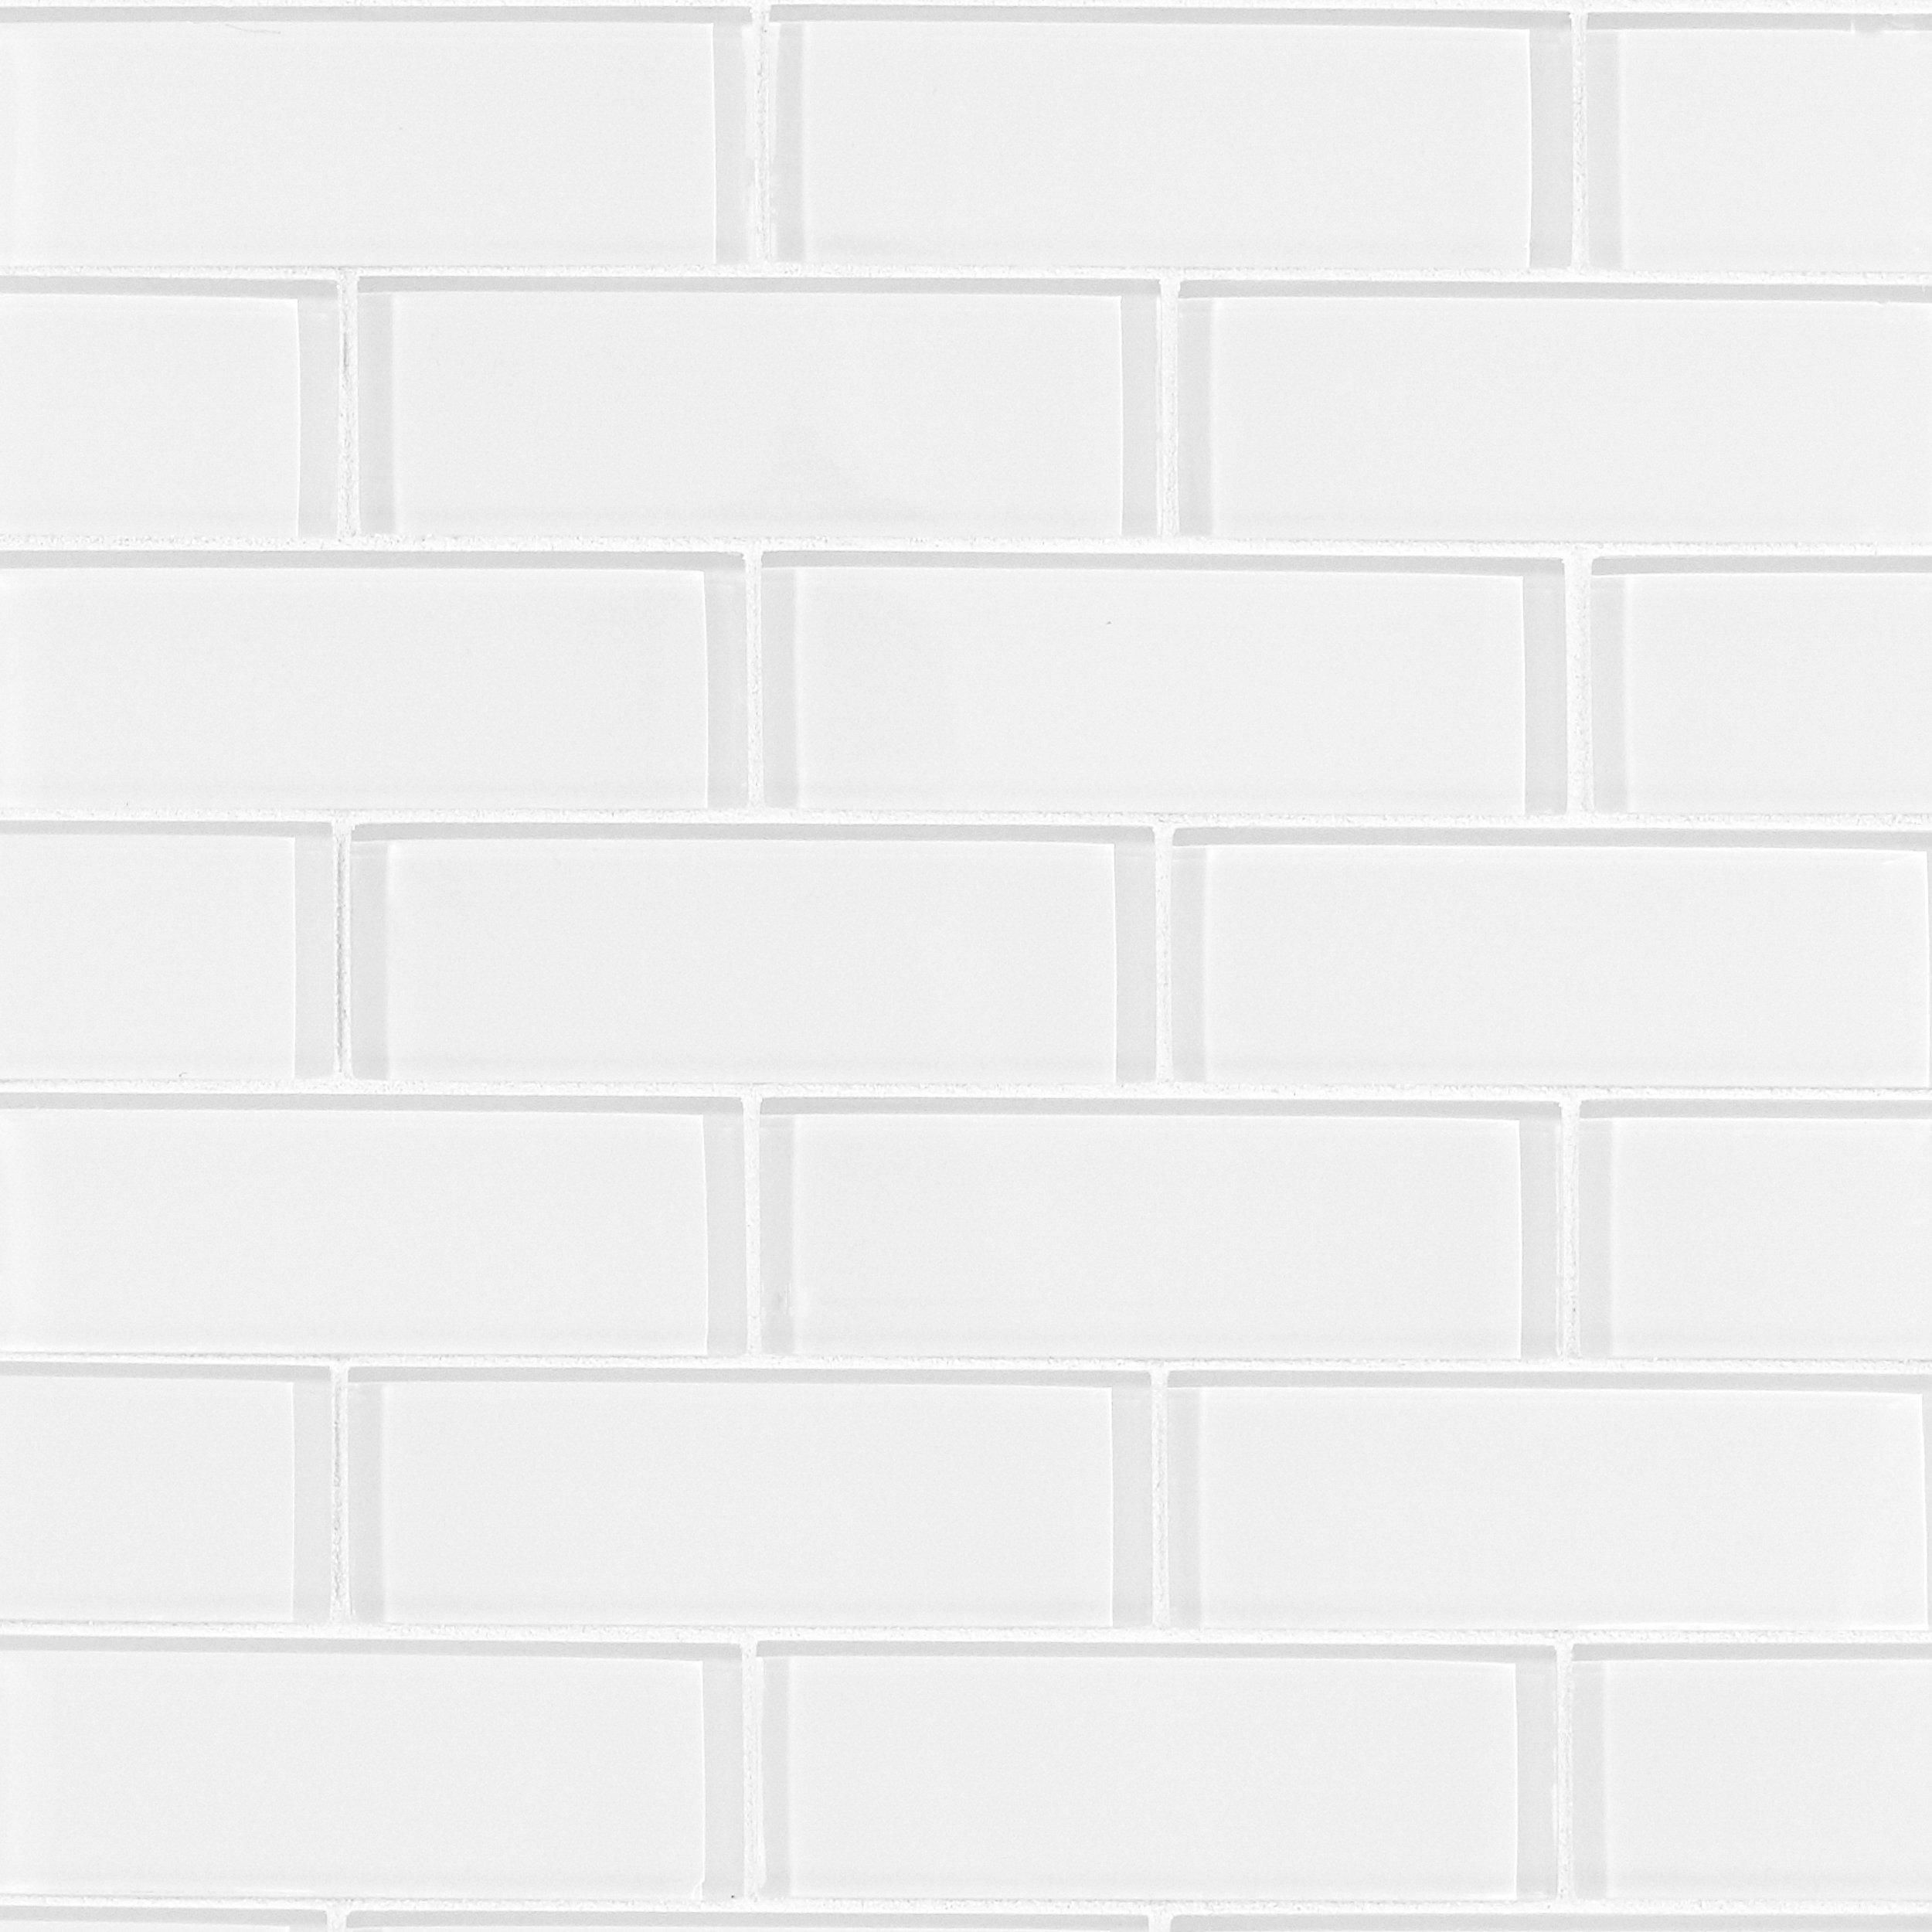 Pure Snow Ii 2 X 6 Inch Brick Glass Mosaic Tile 12 Inch X 12 Inch White 0 3 Inch Thick Floor Decor In 2020 White Glass Tile Mosaic Glass Glass Mosaic Tiles